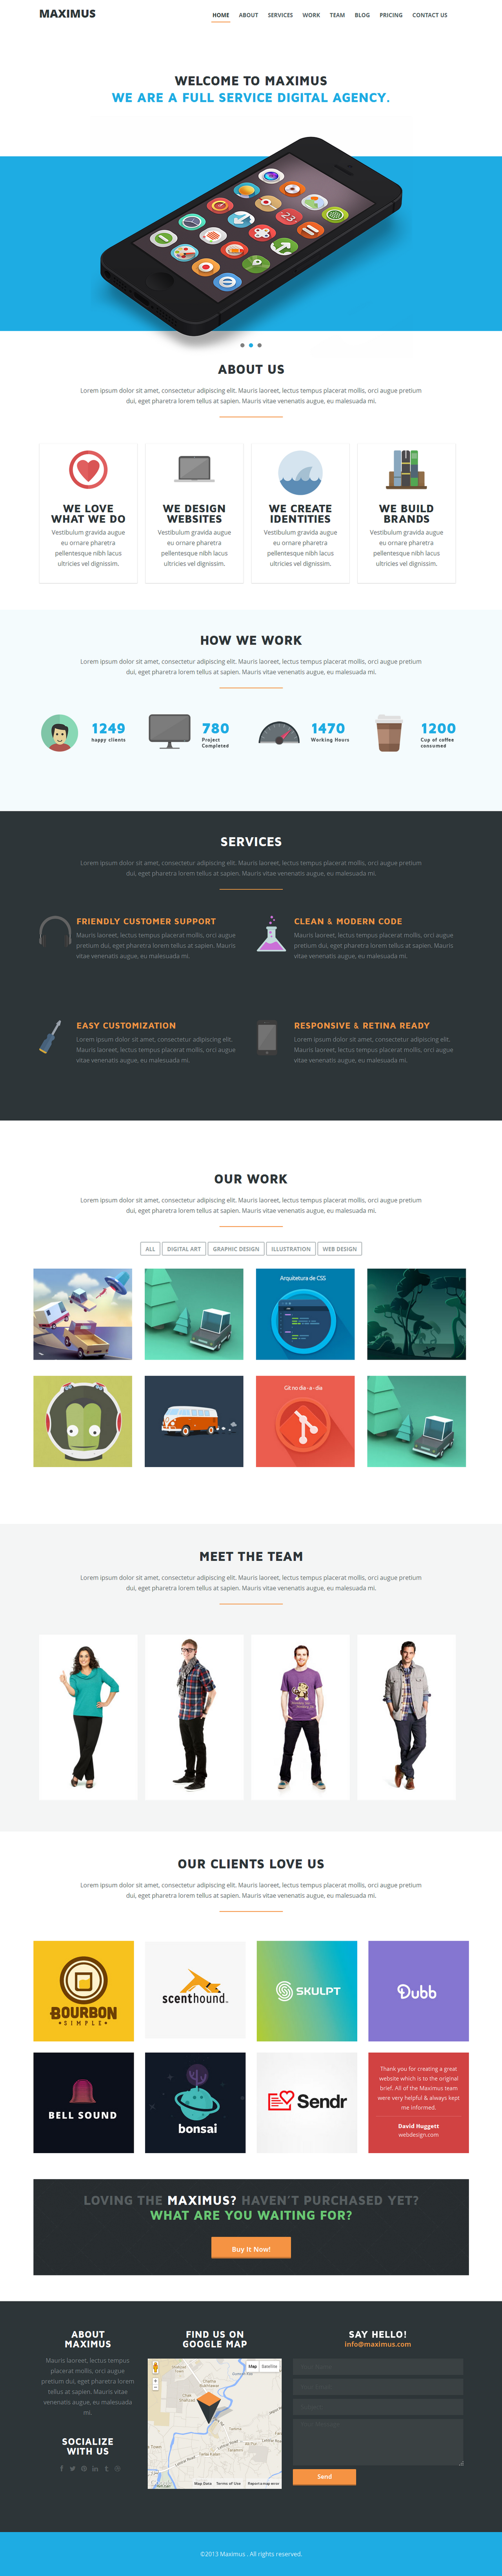 MAXIMUS Responsive Onepage Theme by webdesigngeek